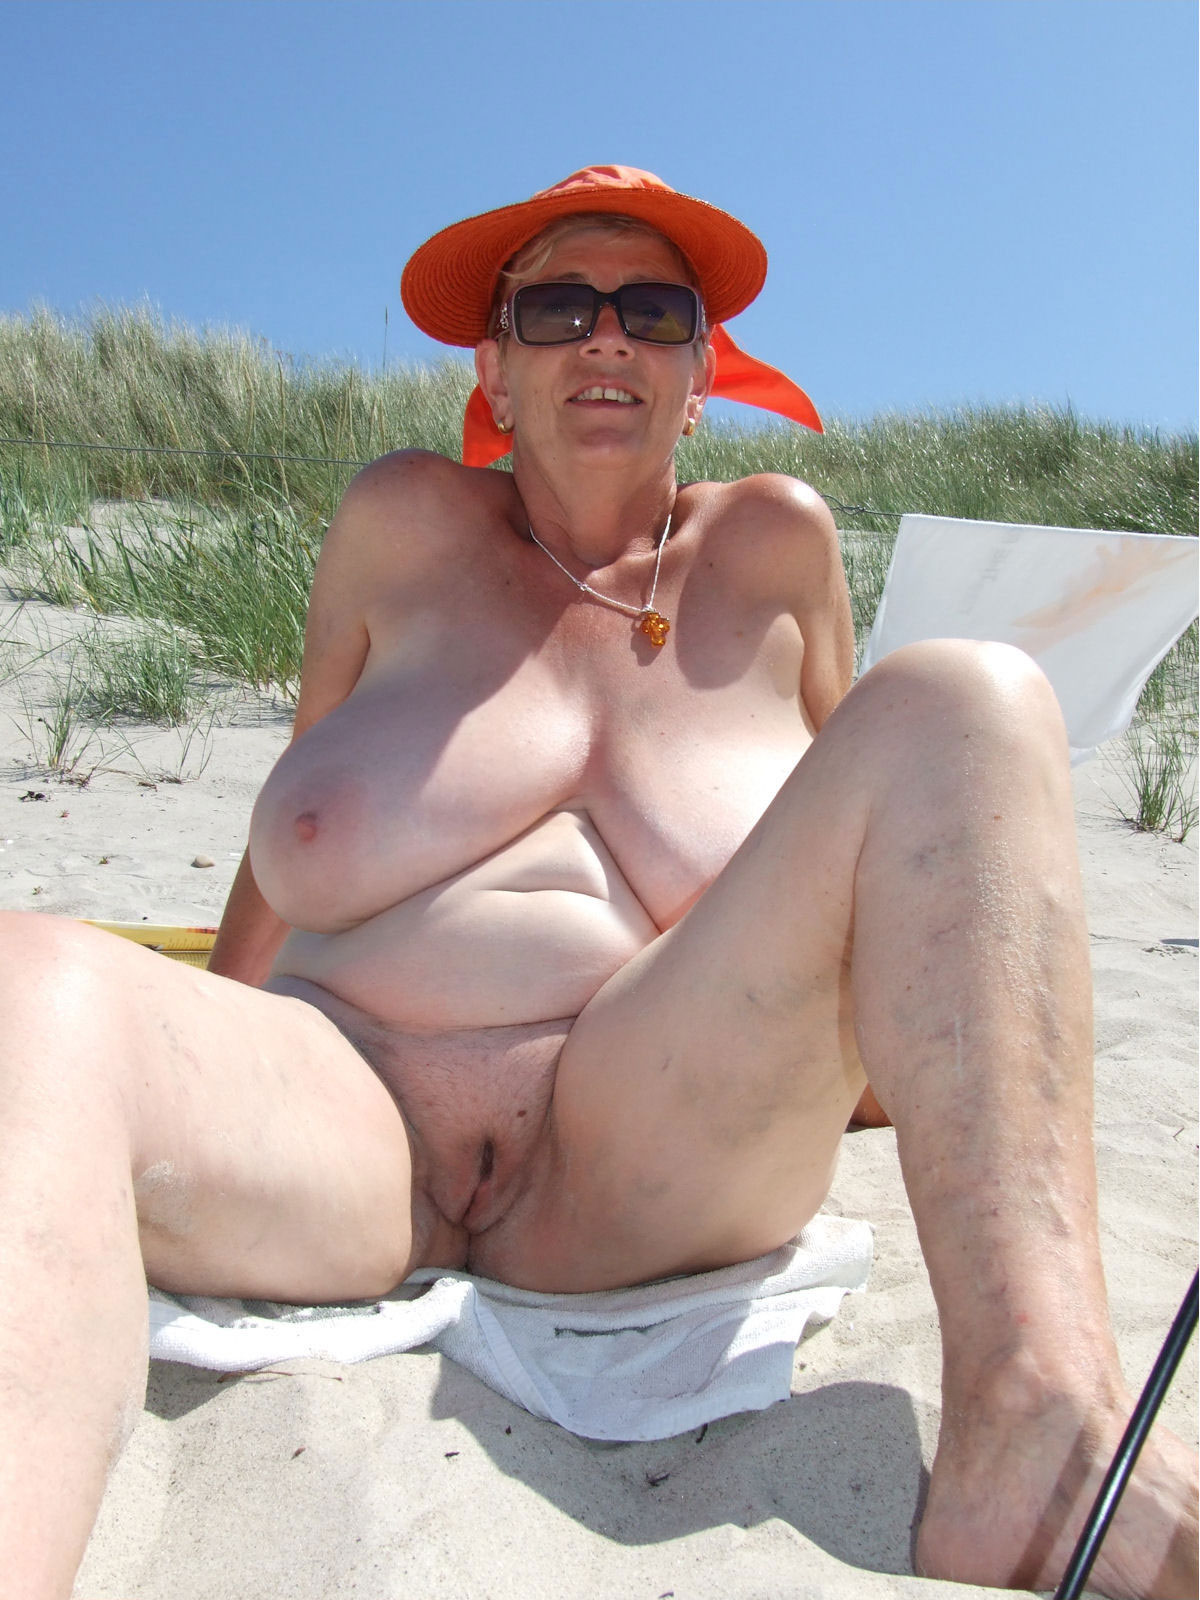 mature nudist dames with huge breasts - chubby naturists - granny public